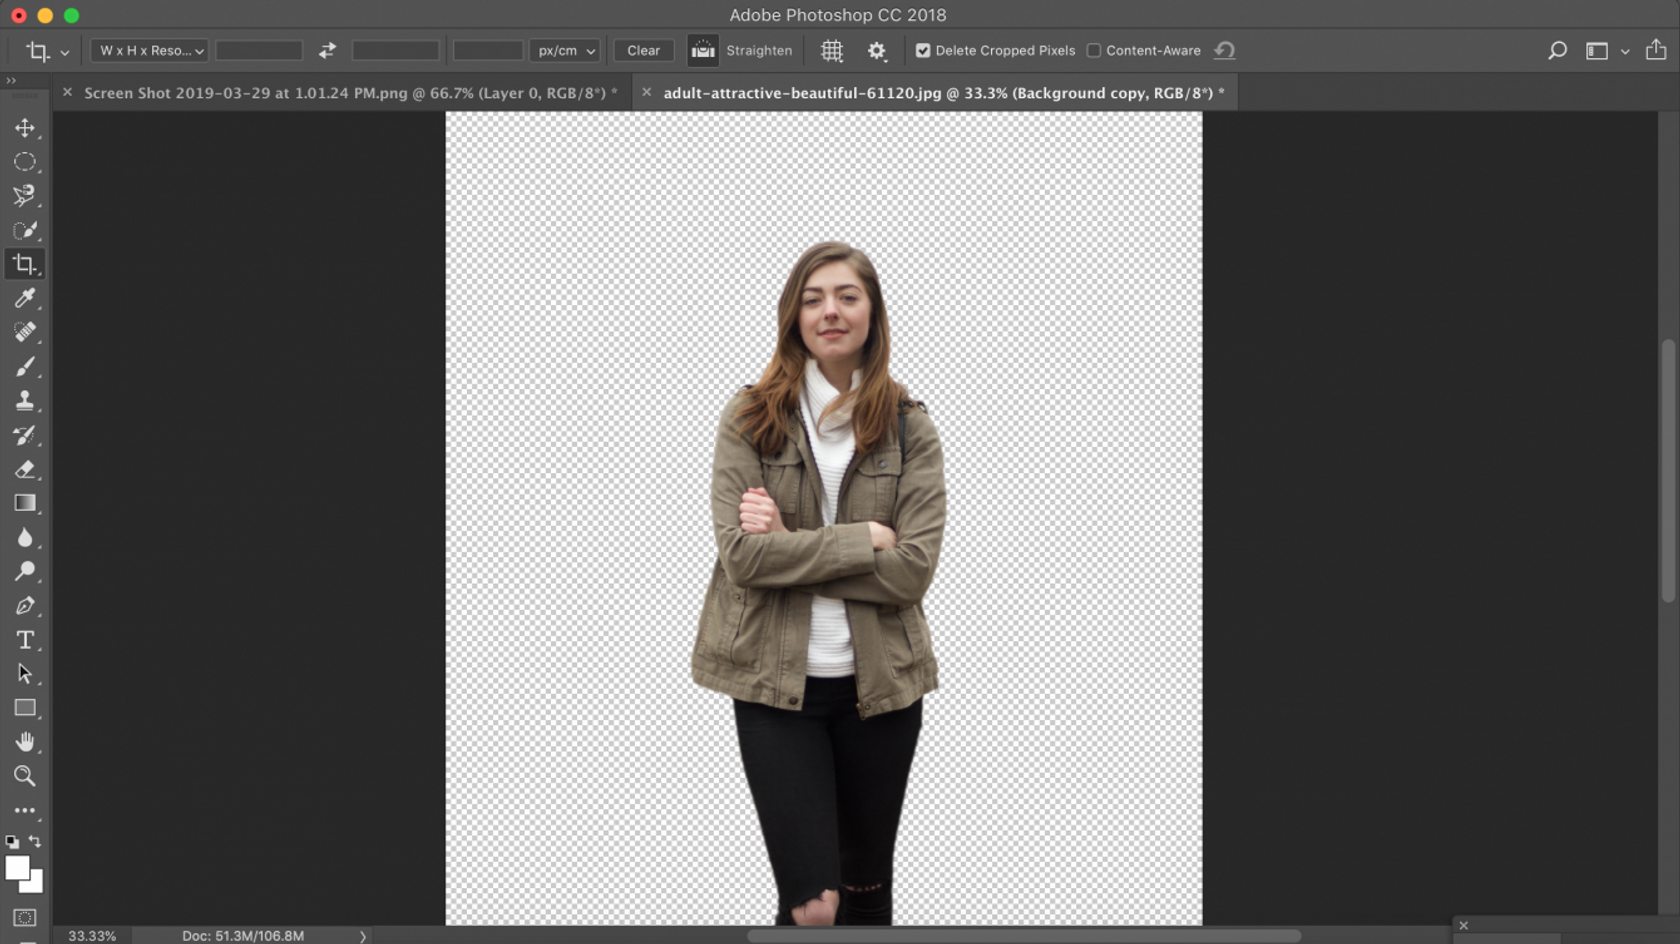 How to Smooth Edges in Photoshop: Photoshop Feather and Other Tools Image8